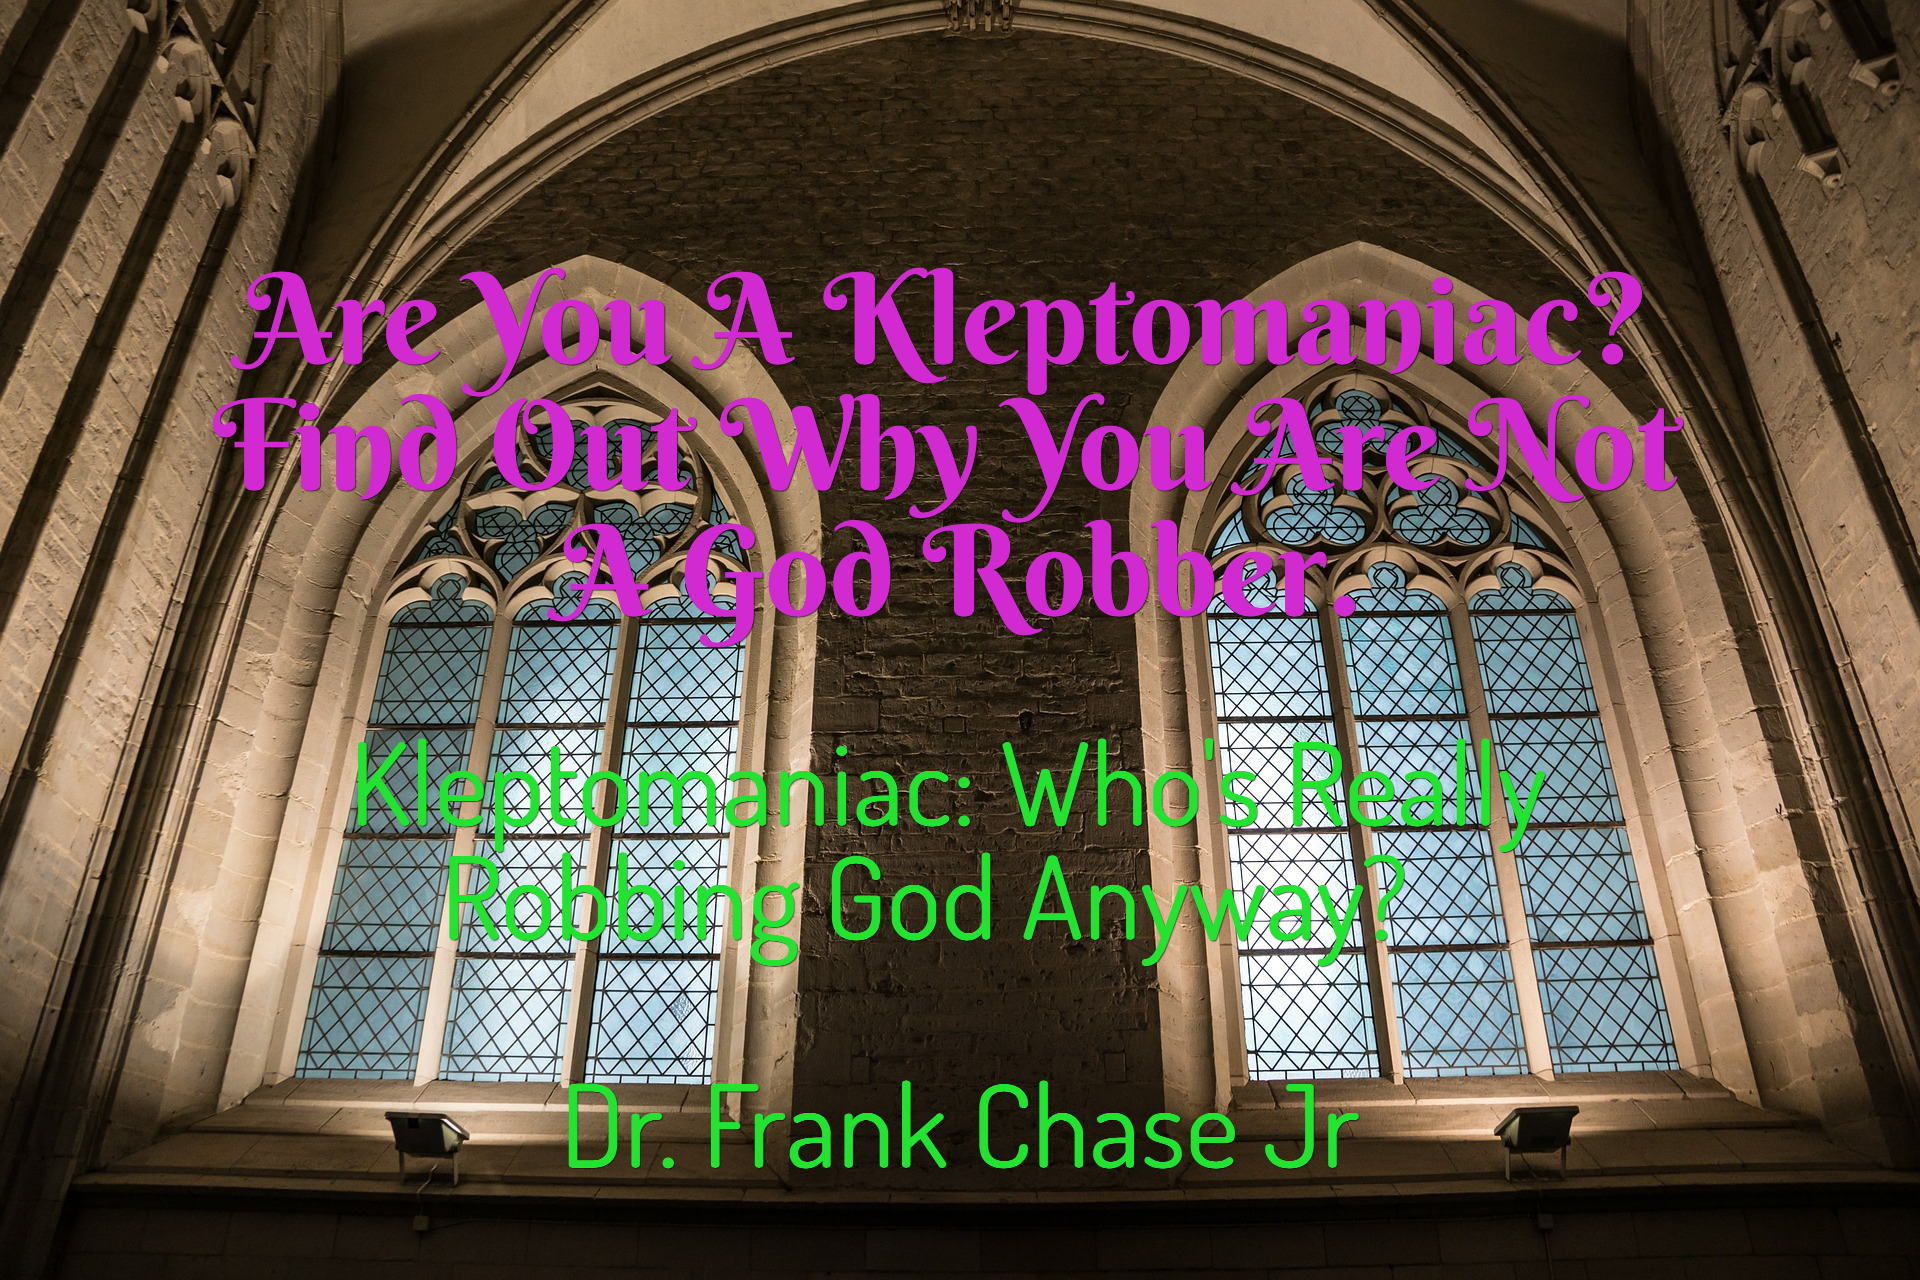 are you a kleptomaniac find out why you are not a god robber...